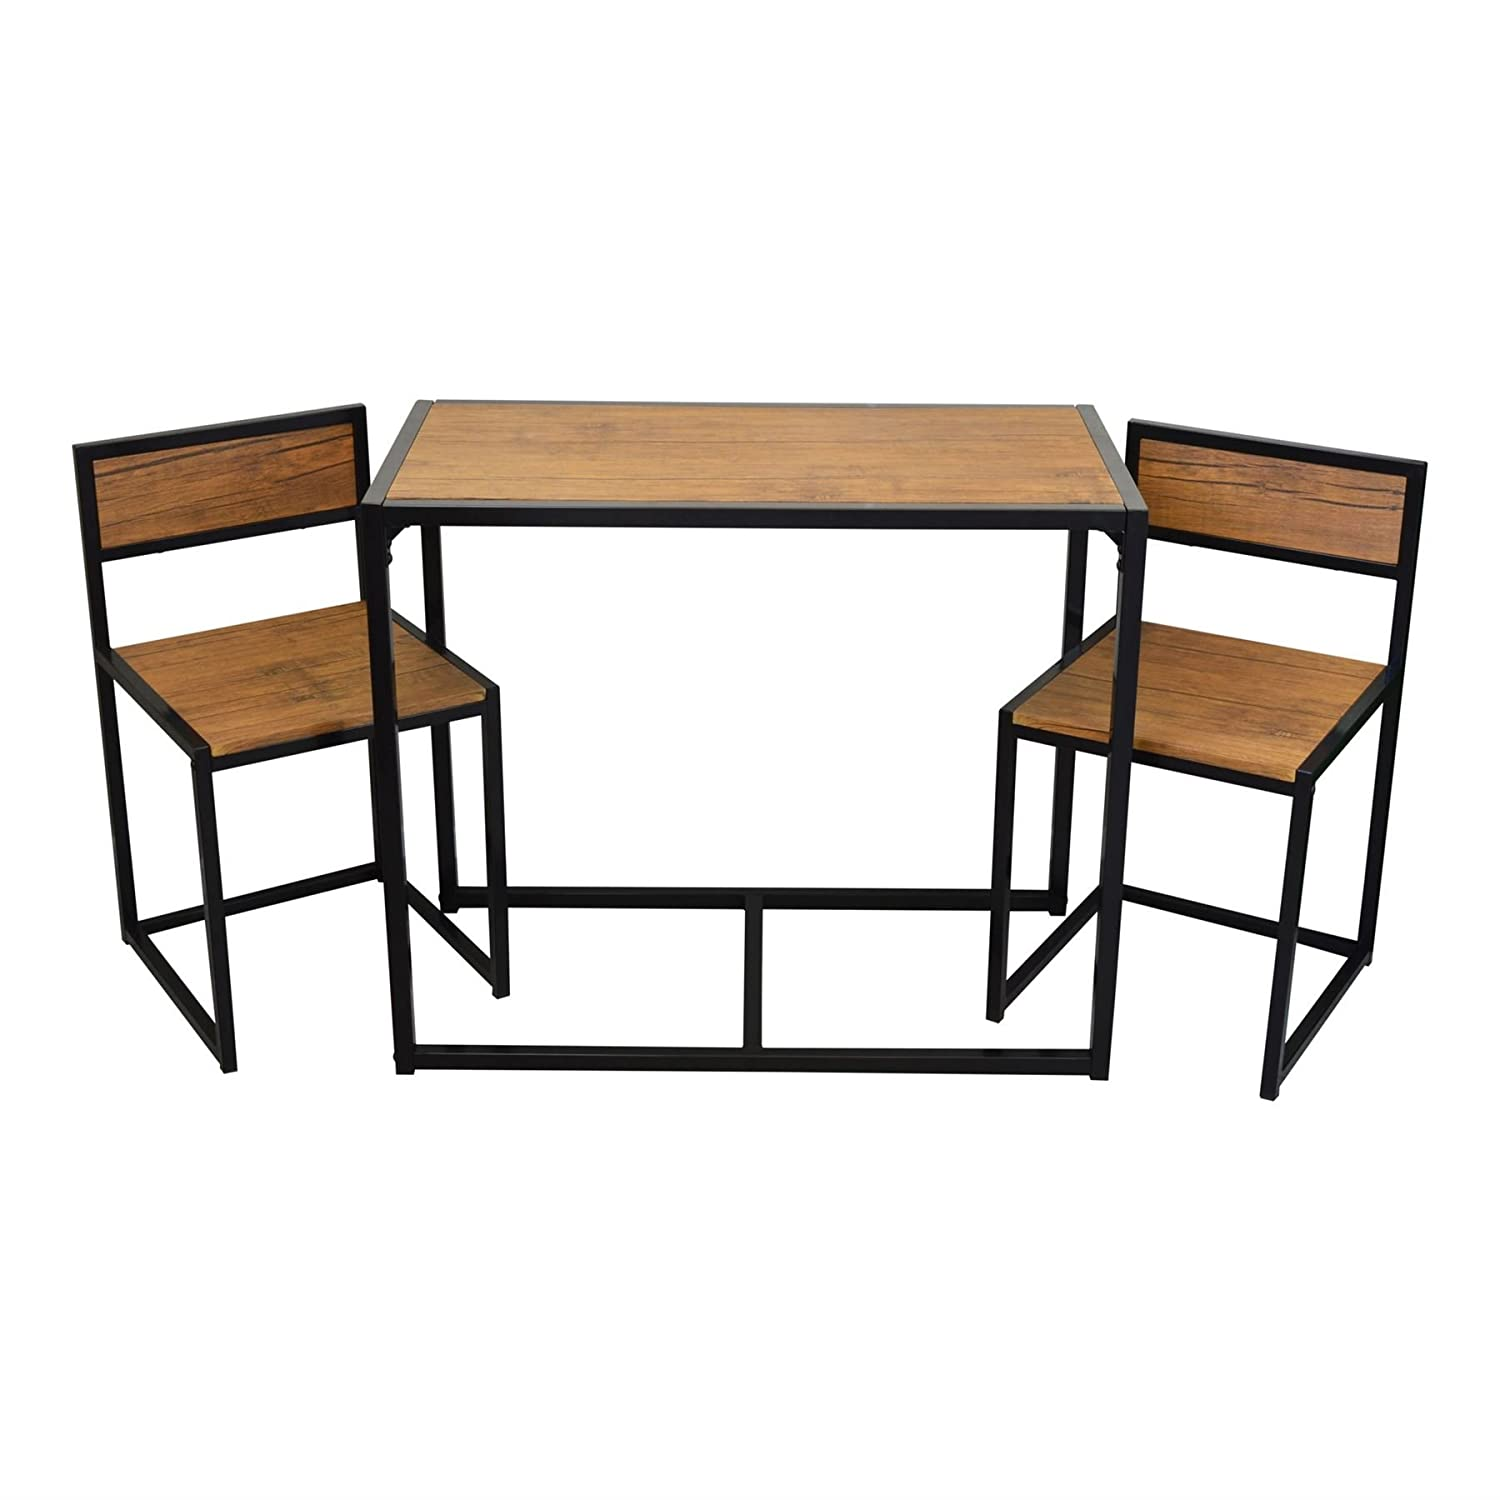 Harbour Housewares 2 Person Space Saving,pact, Kitchen Dining Table & Chairs  Set: Amazon: Kitchen & Home